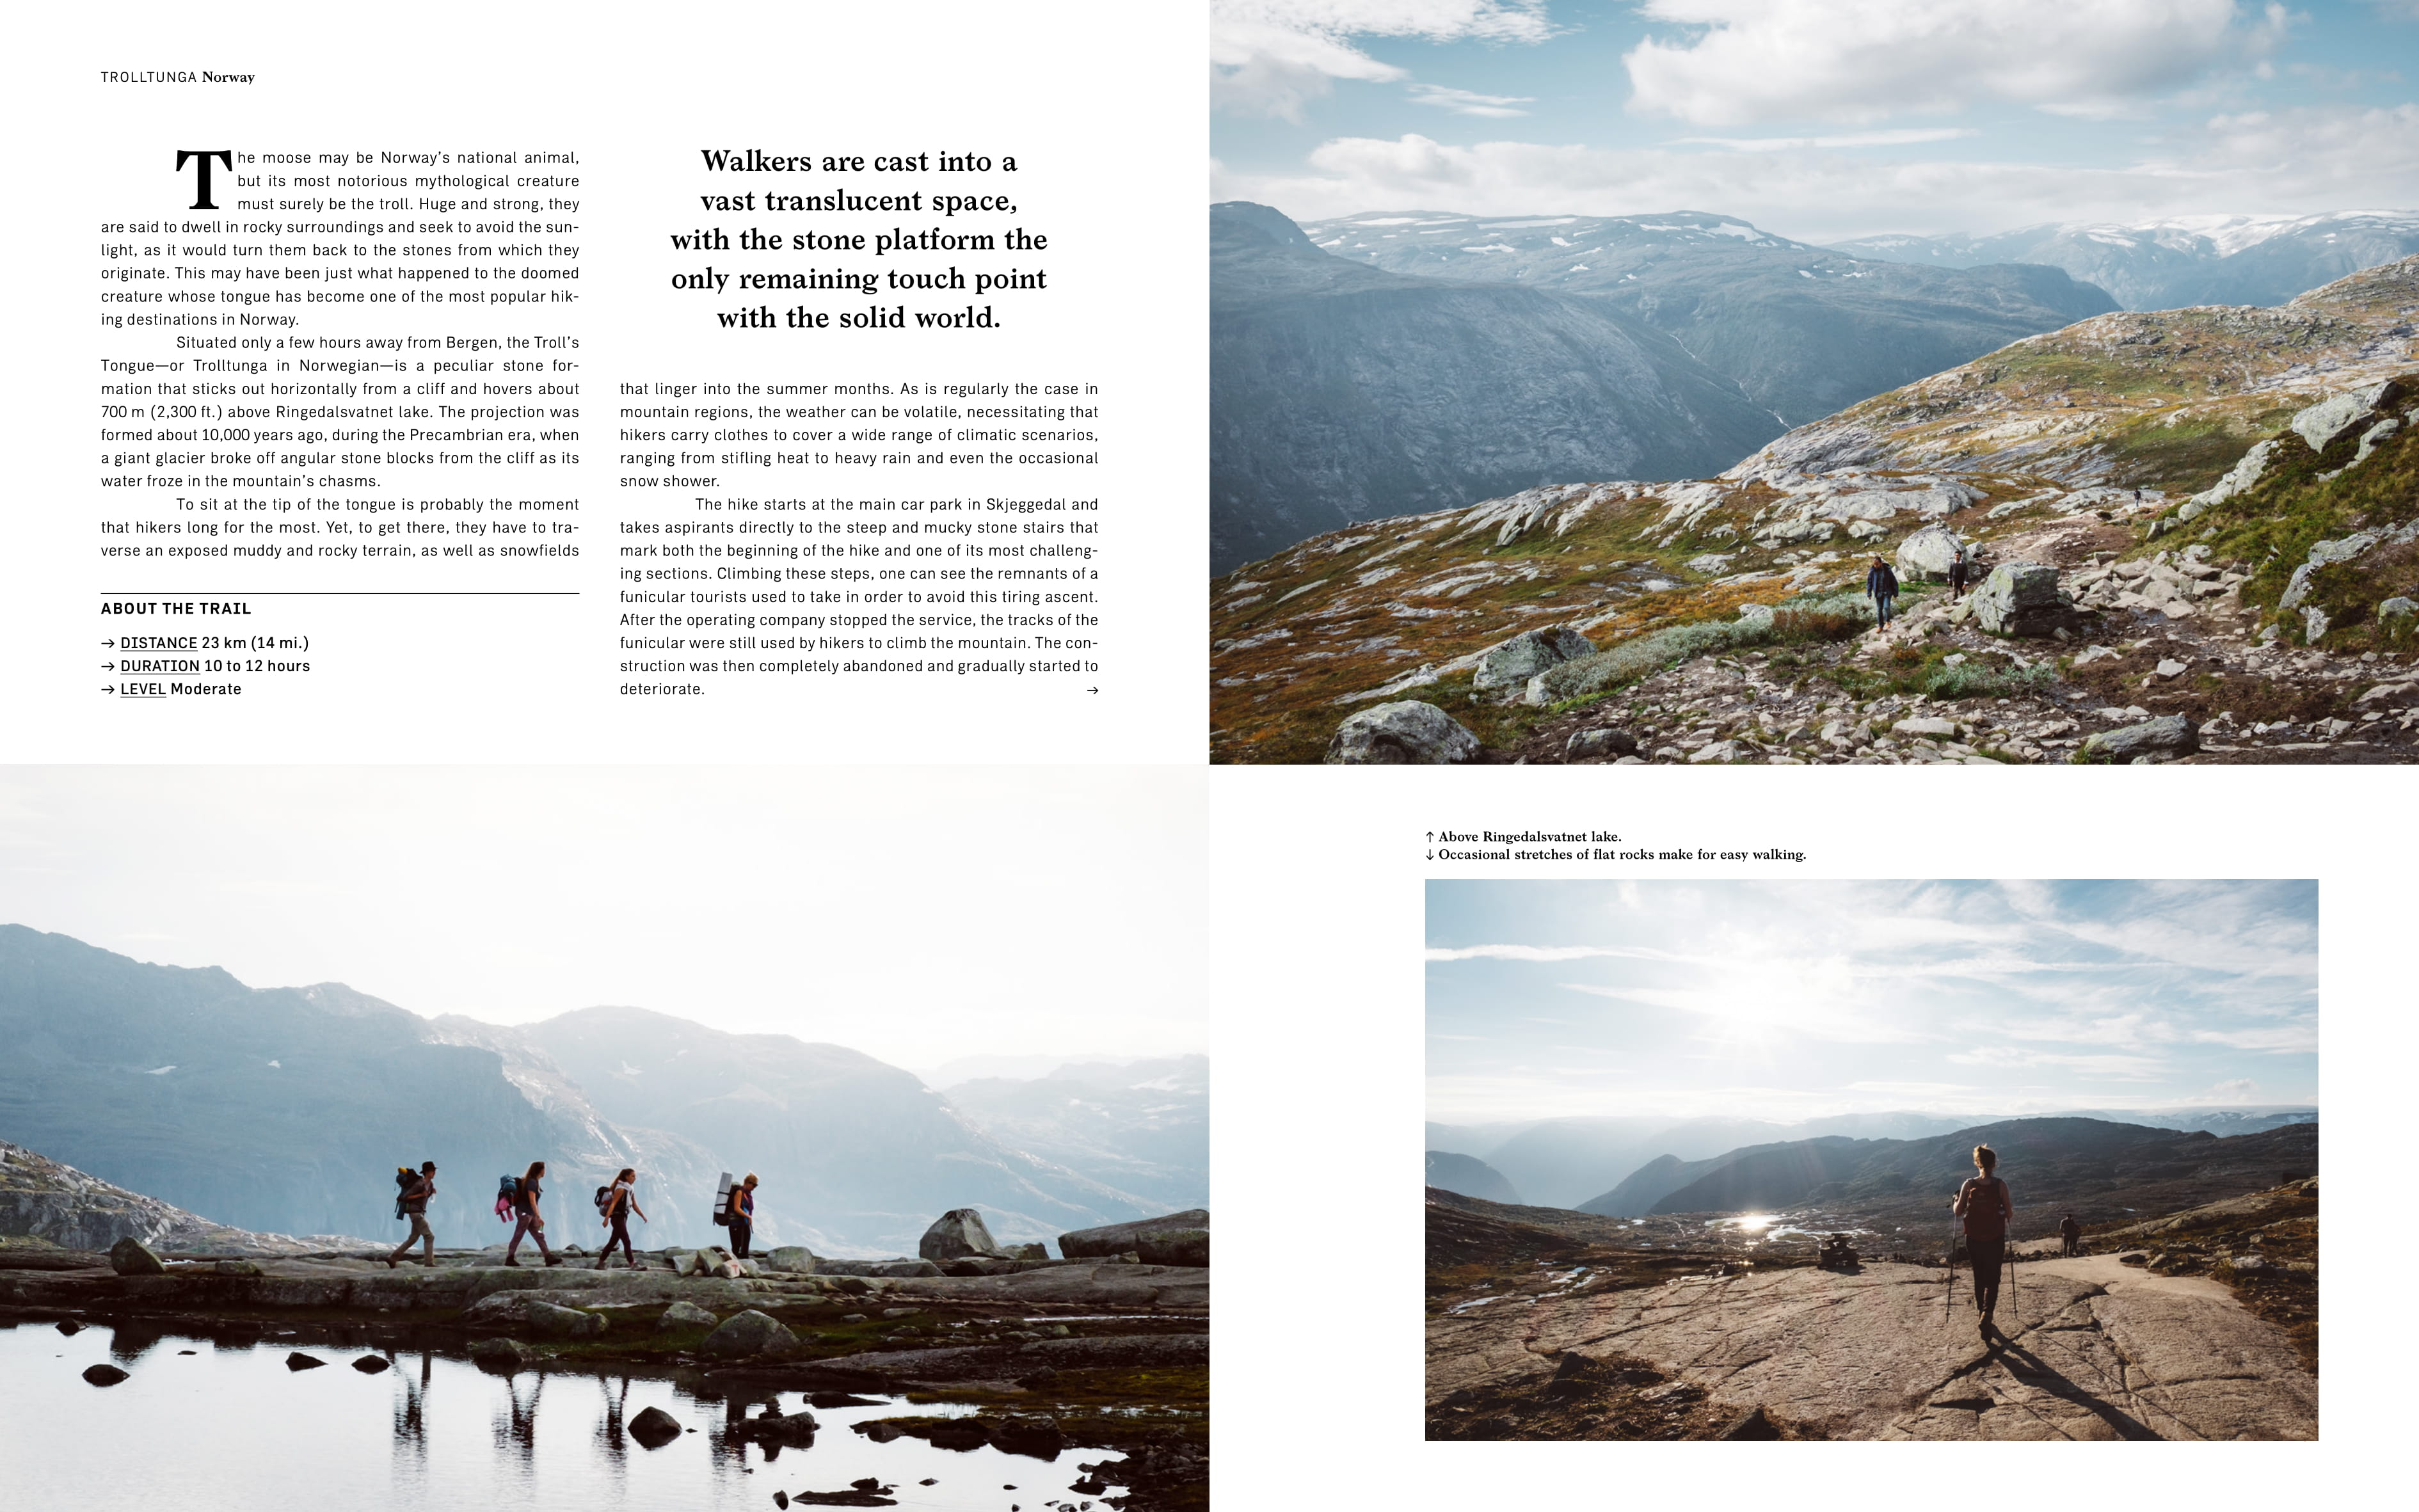 From Wanderlust: Hiking on Legendary Trails copyright Gestalten 2017